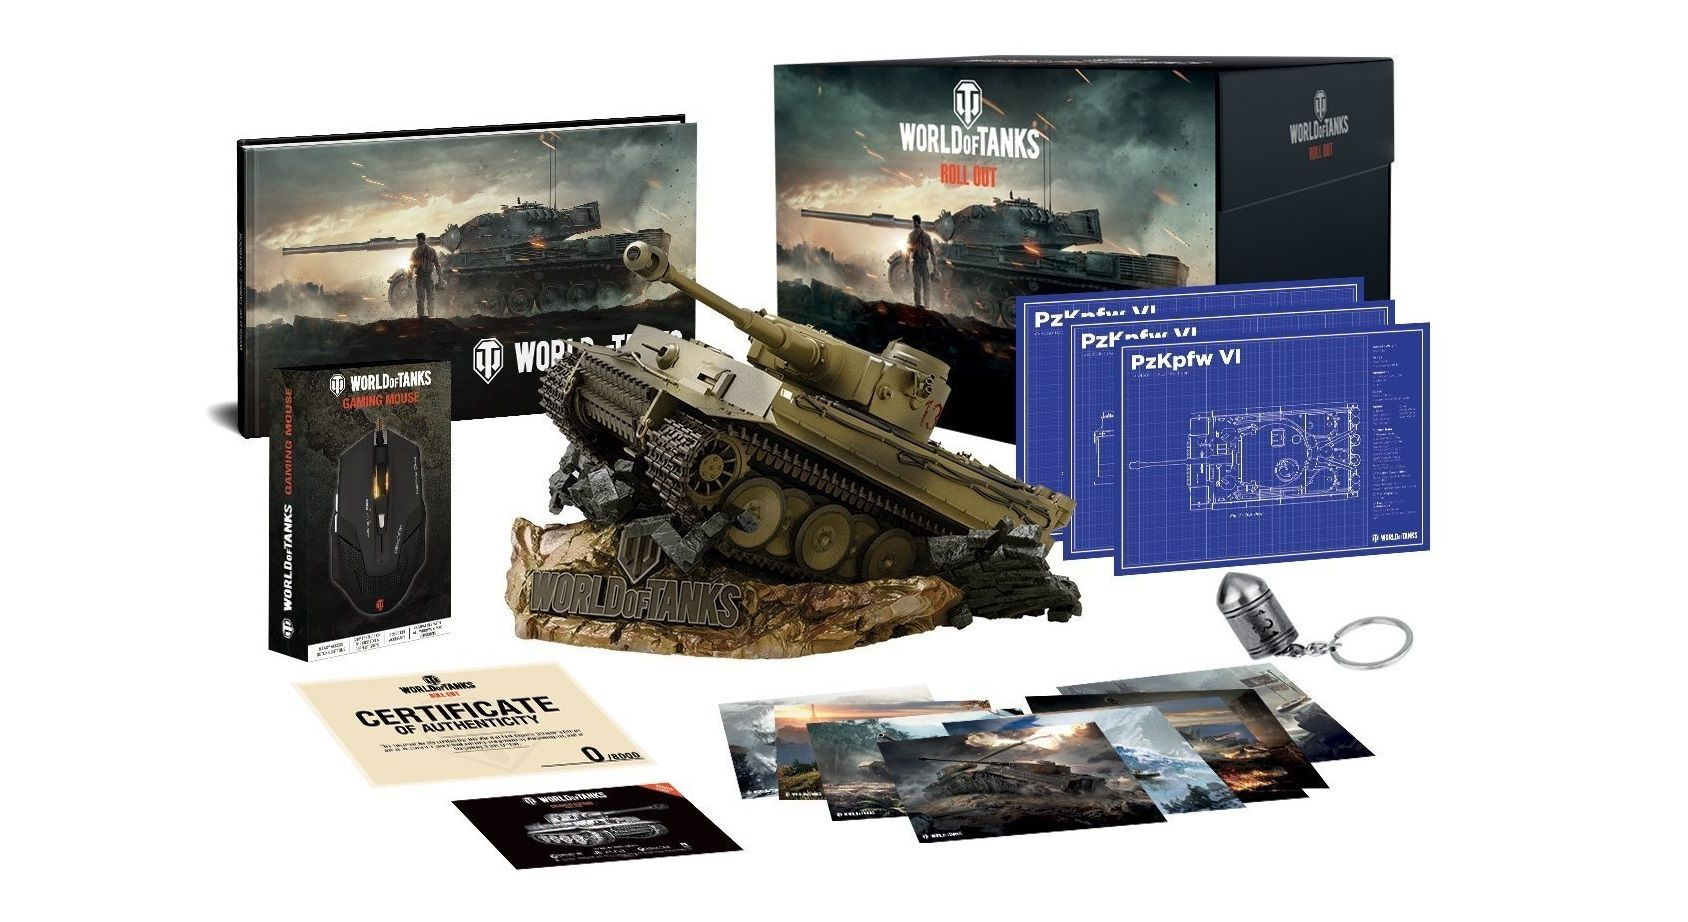 World of Tanks Collector's Edition (PC, PS4, Xbox One) - 3